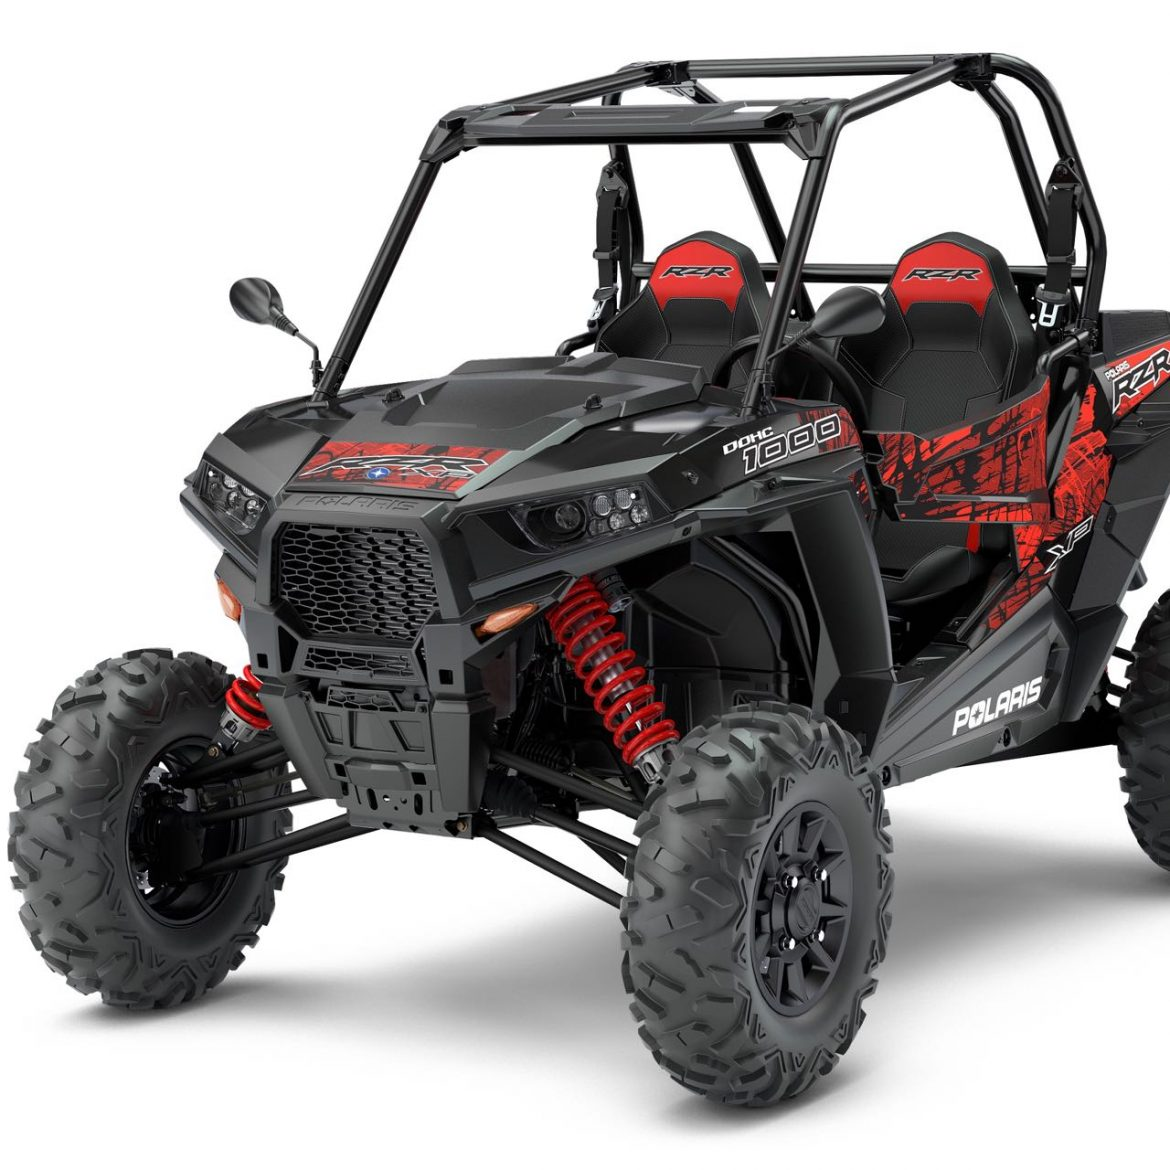 2018-rzr-xp-1000-eps-red-black-pearl_z18vde99fk-eu_3q (1)